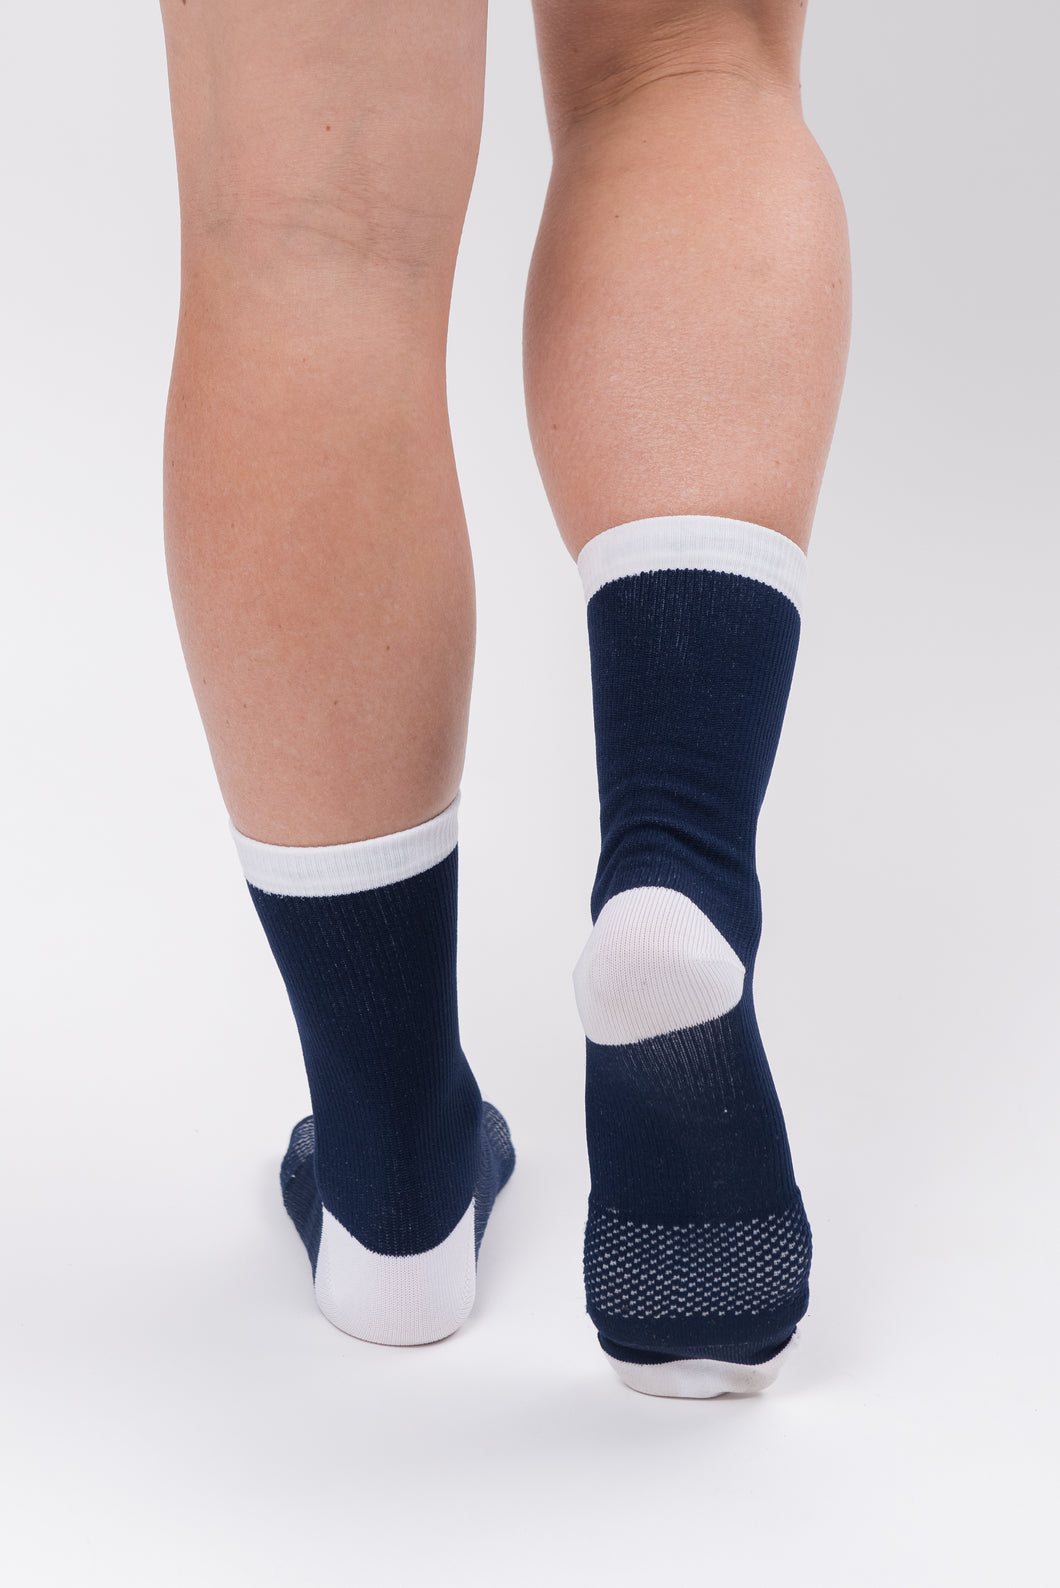 women's navy and white cycling socks